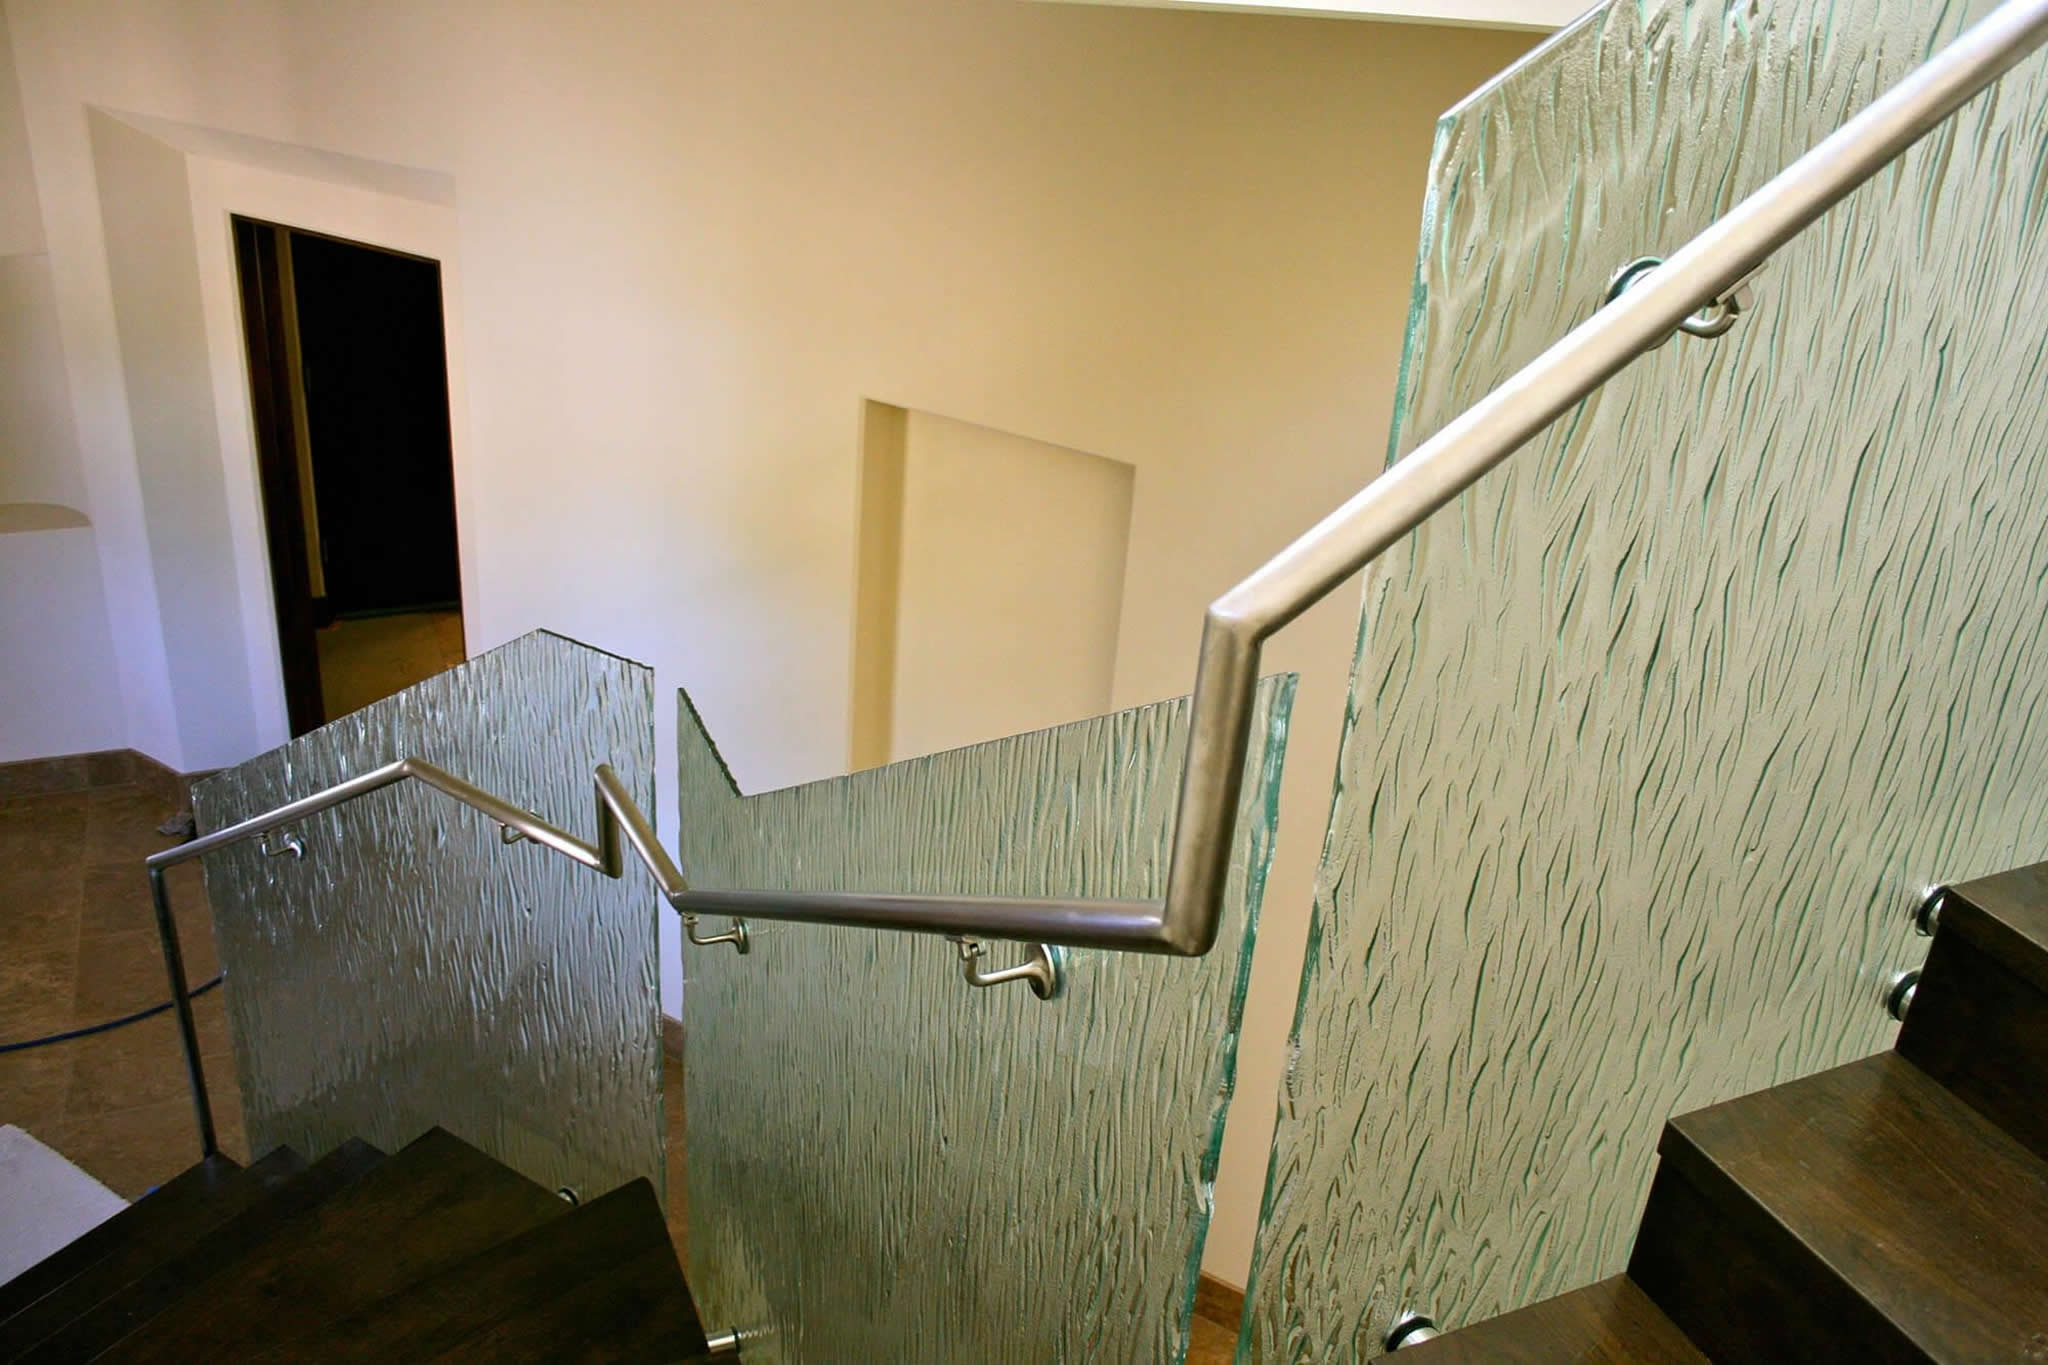 Cast Slumped And Sandblasted Architectural Art Glass San Diego | Frosted Glass Stair Panels | Smoked | Toughened | Deck | Balcony | Contemporary